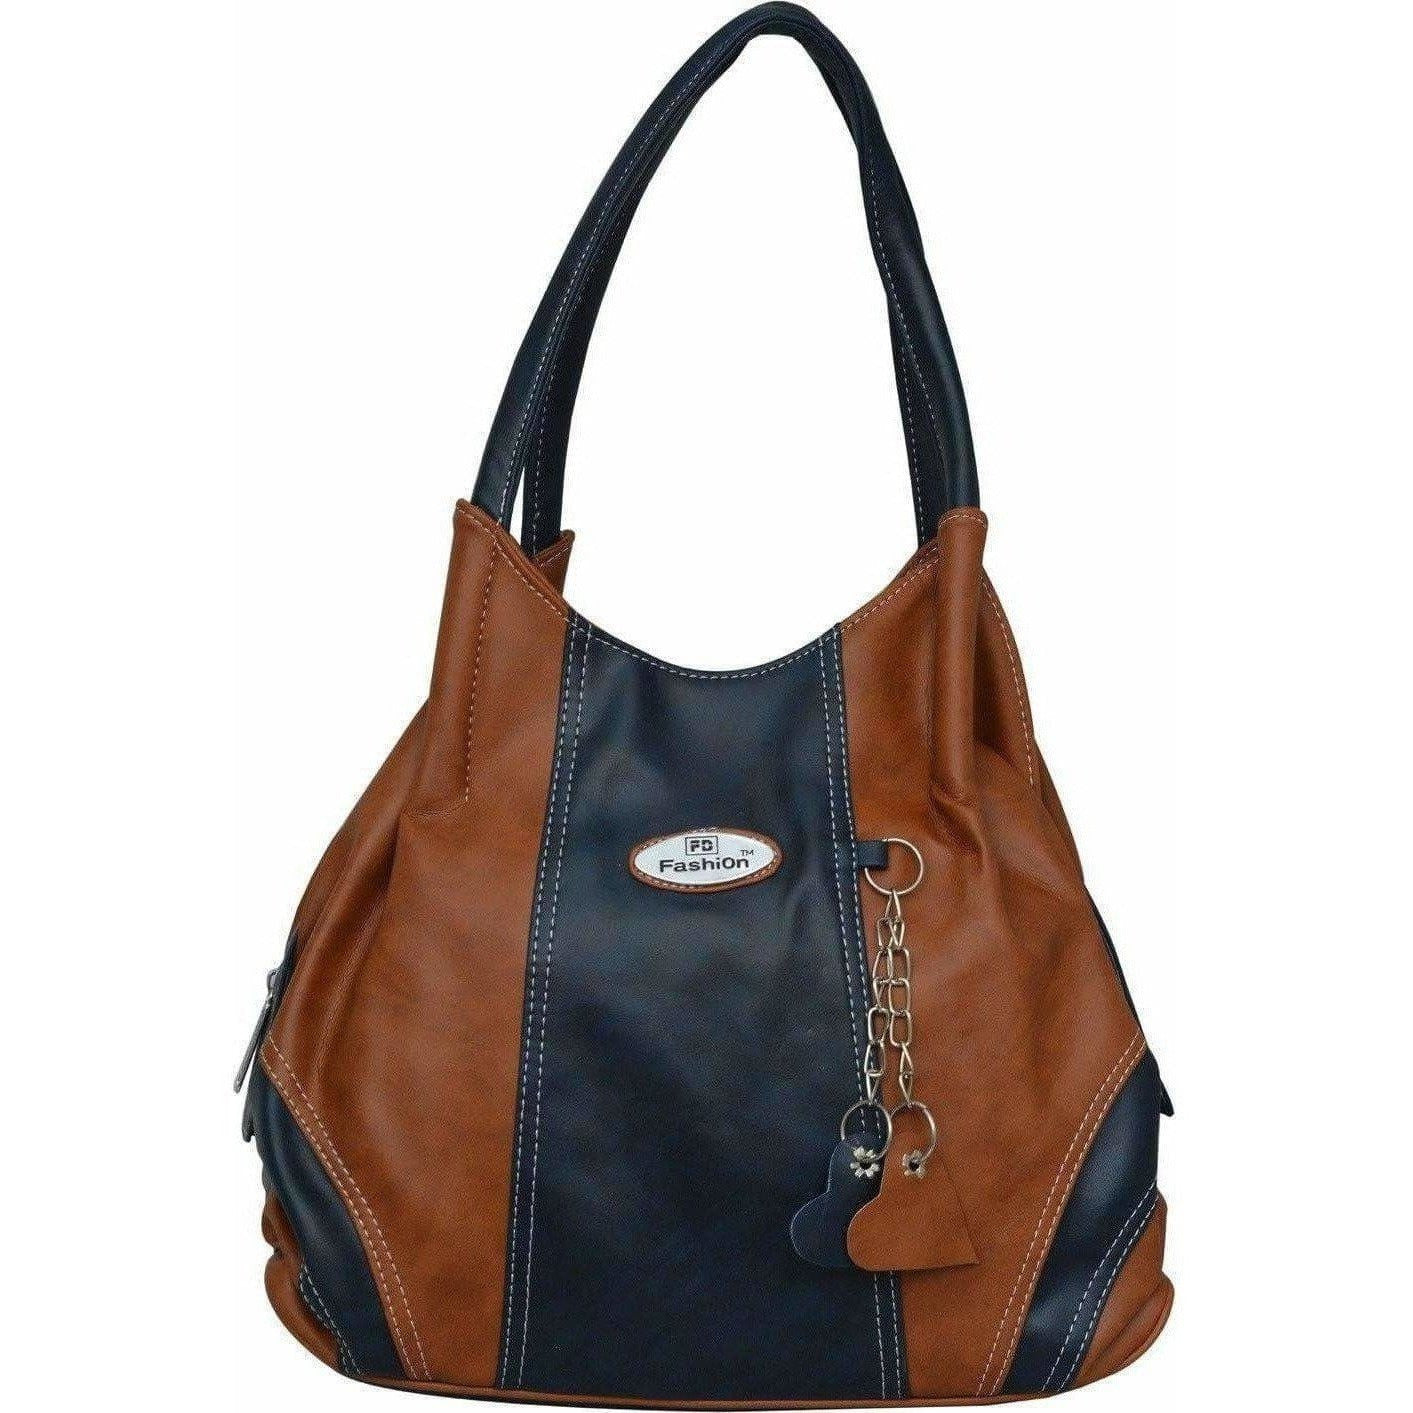 FD Fashion Shoulder Bag  (Tan, Blue)